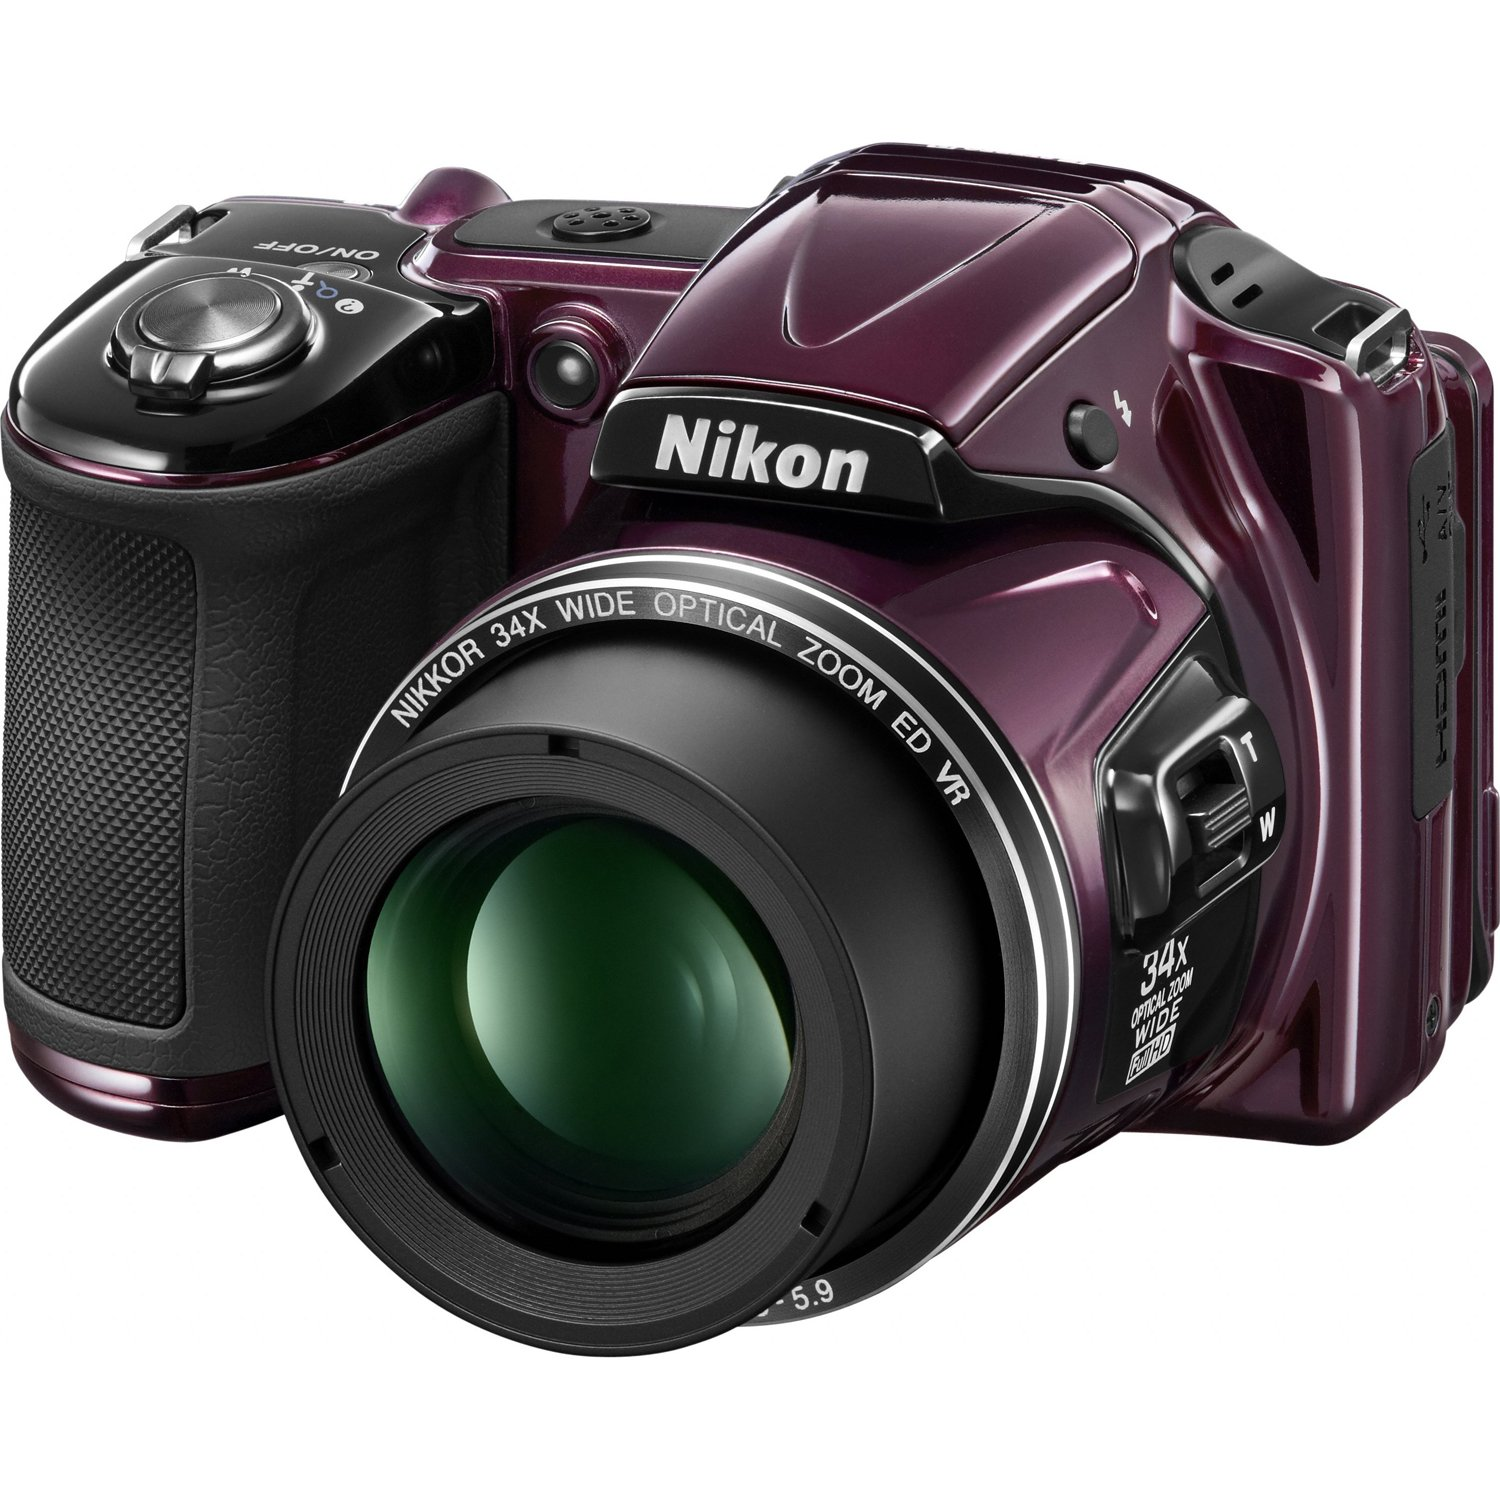 Buy Nikon Coolpix Now!